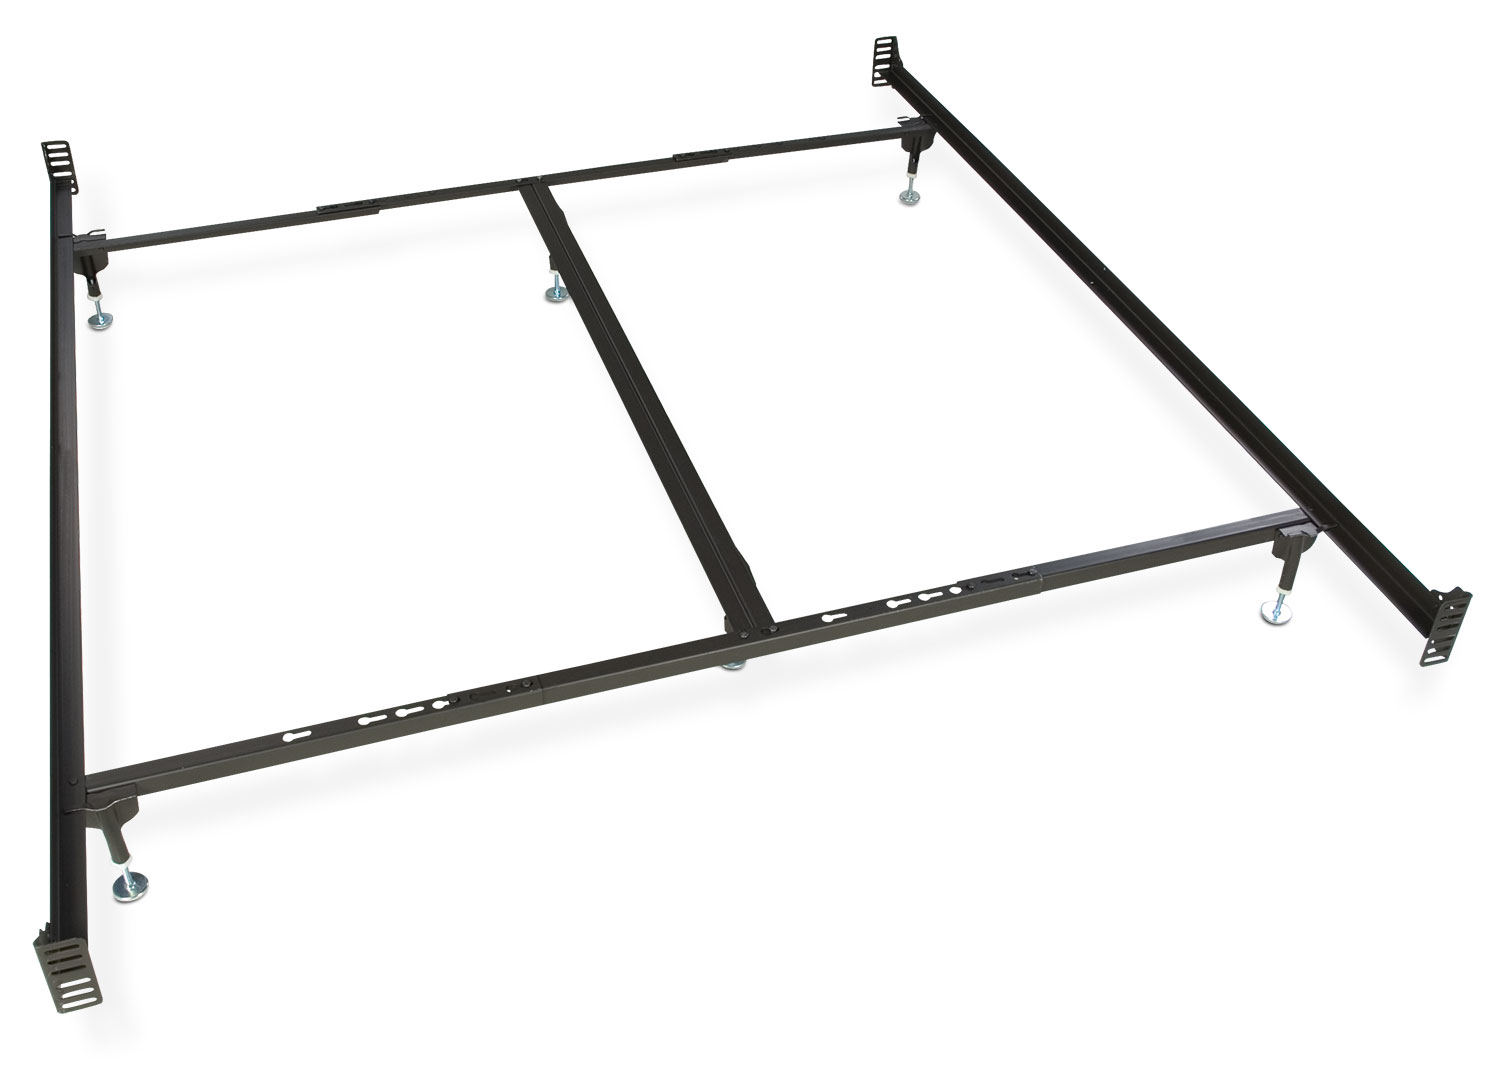 Mattresses and Bedding - King/Queen Glide Bed Frame